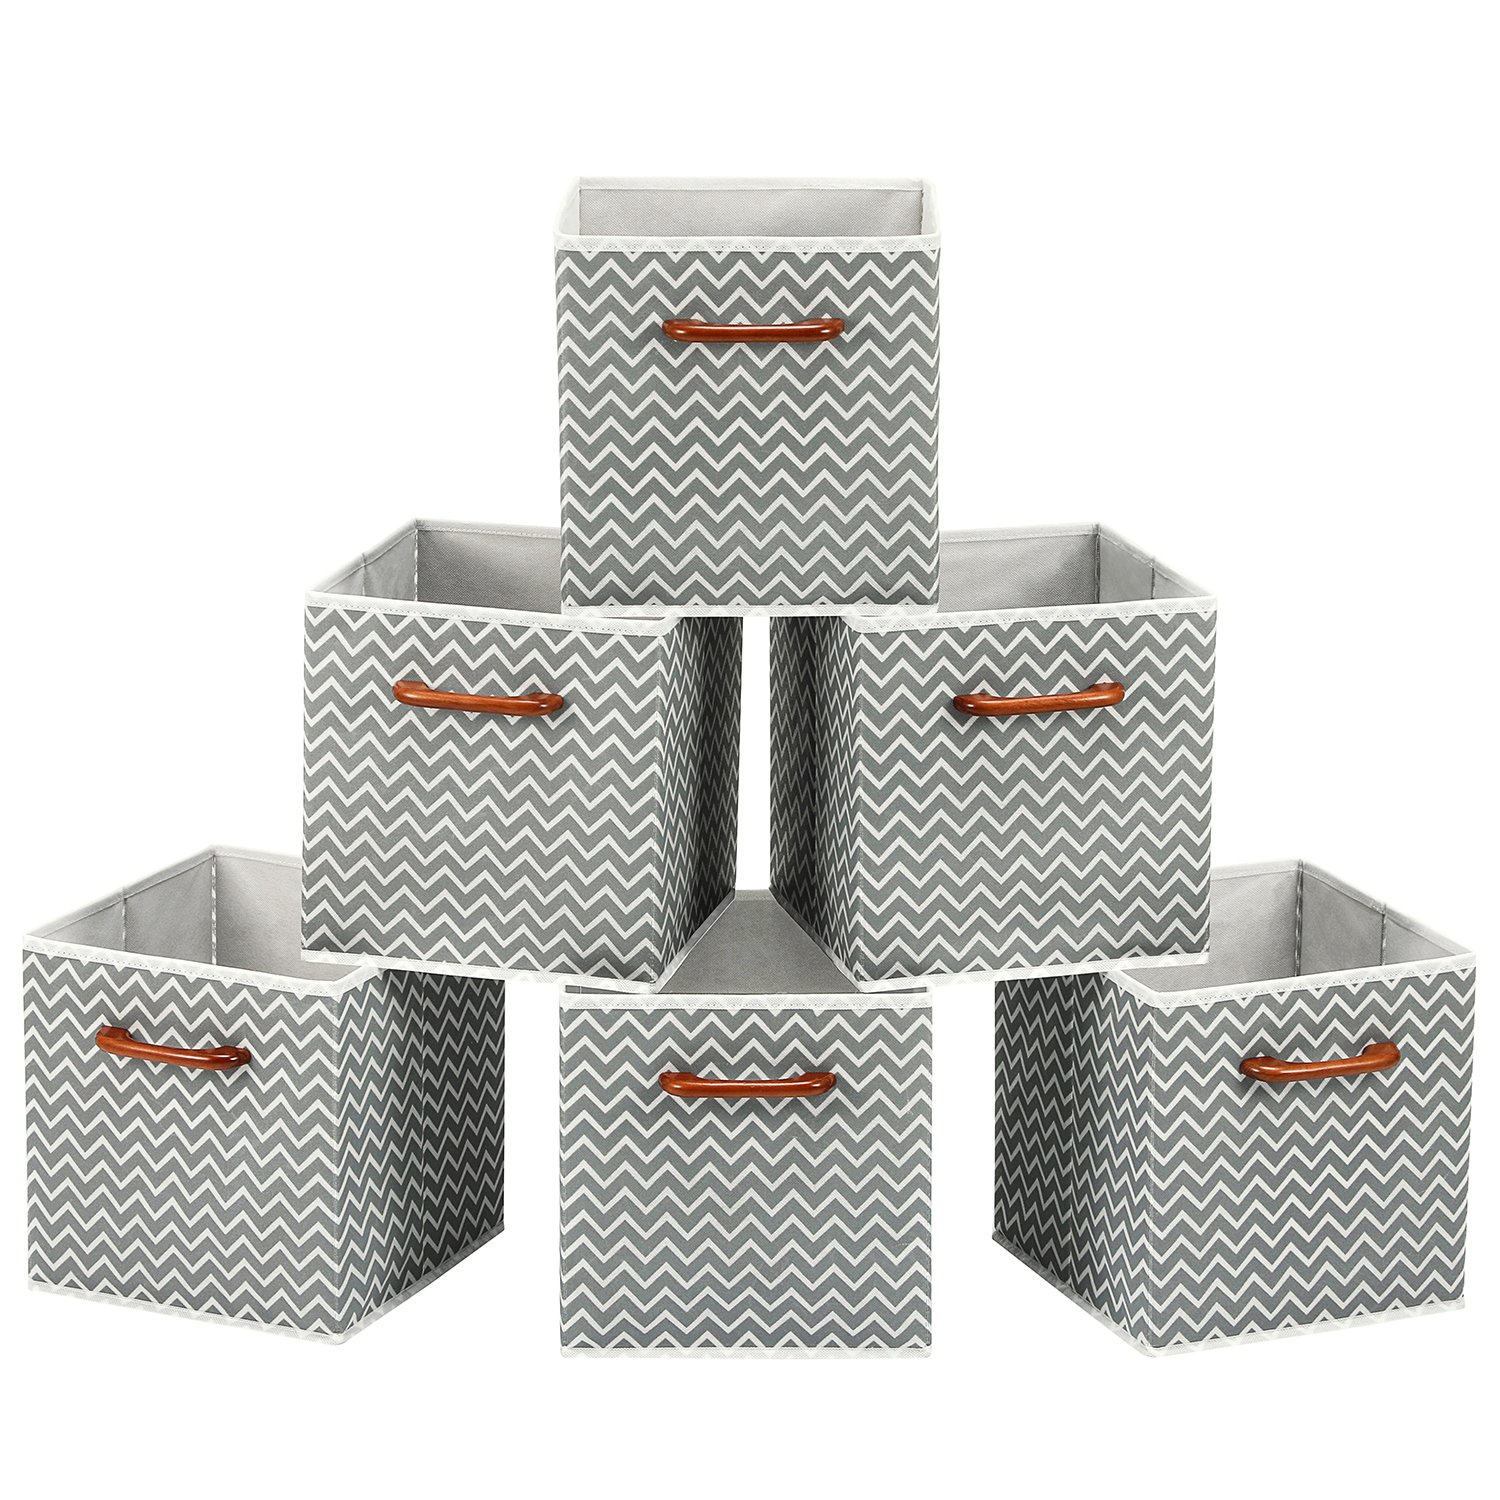 MaidMAX Cloth Storage Bins Cubes Baskets Containers with Wooden Handle for Home Closet Bedroom Drawers Organizers, Foldable, Gray Chevron, Set of 6 by MaidMAX